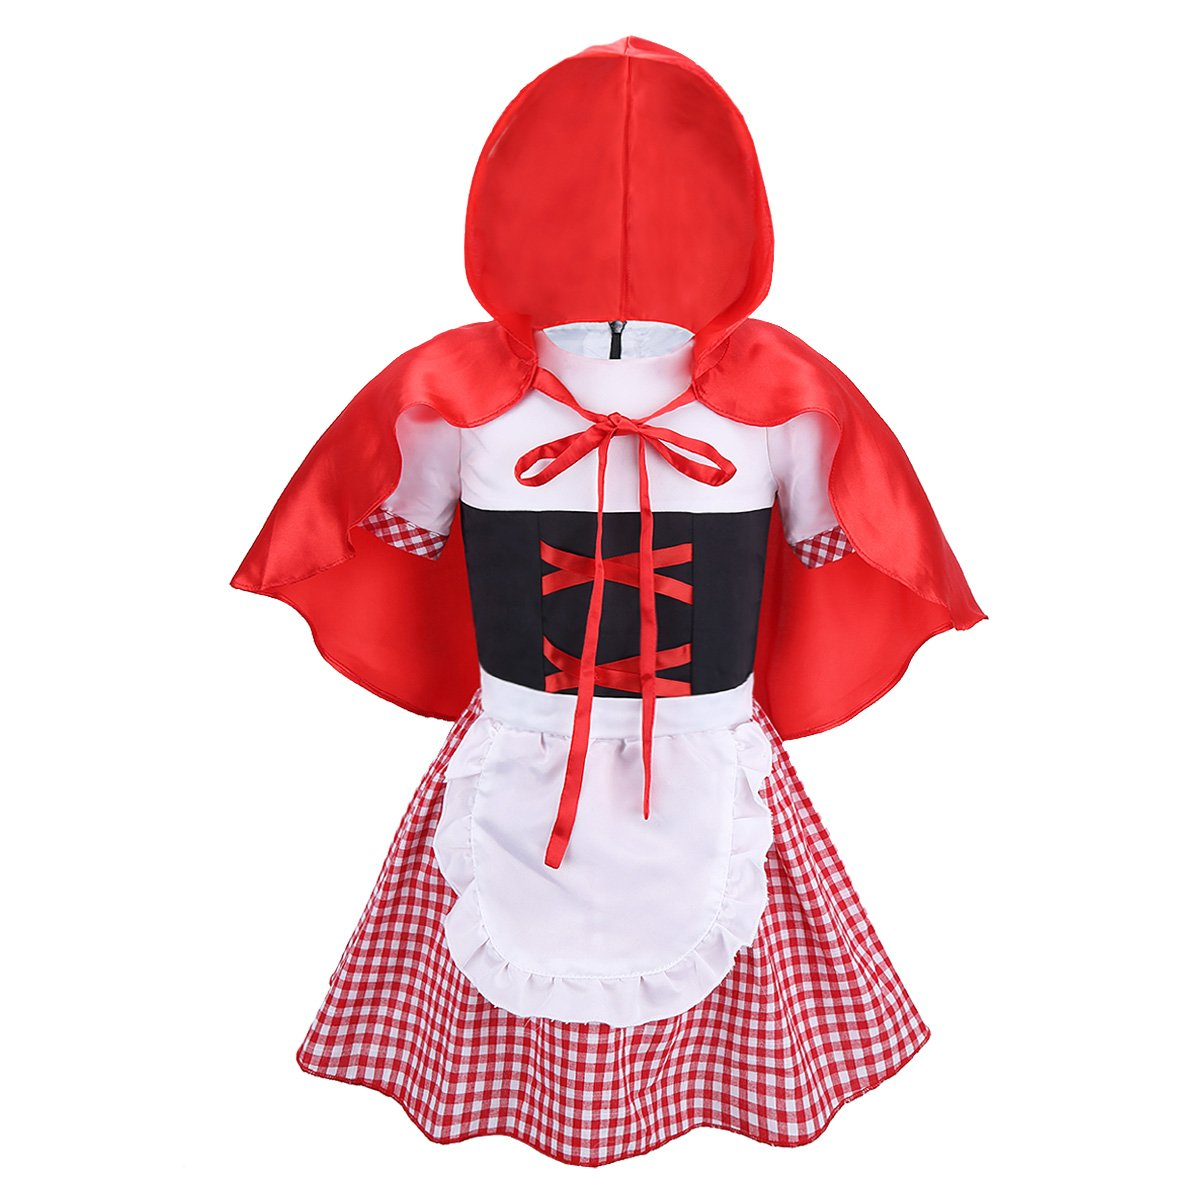 FEESHOW Baby Girls Little Red Riding Hood Halloween Costumes Cosplay Outfit Cloak